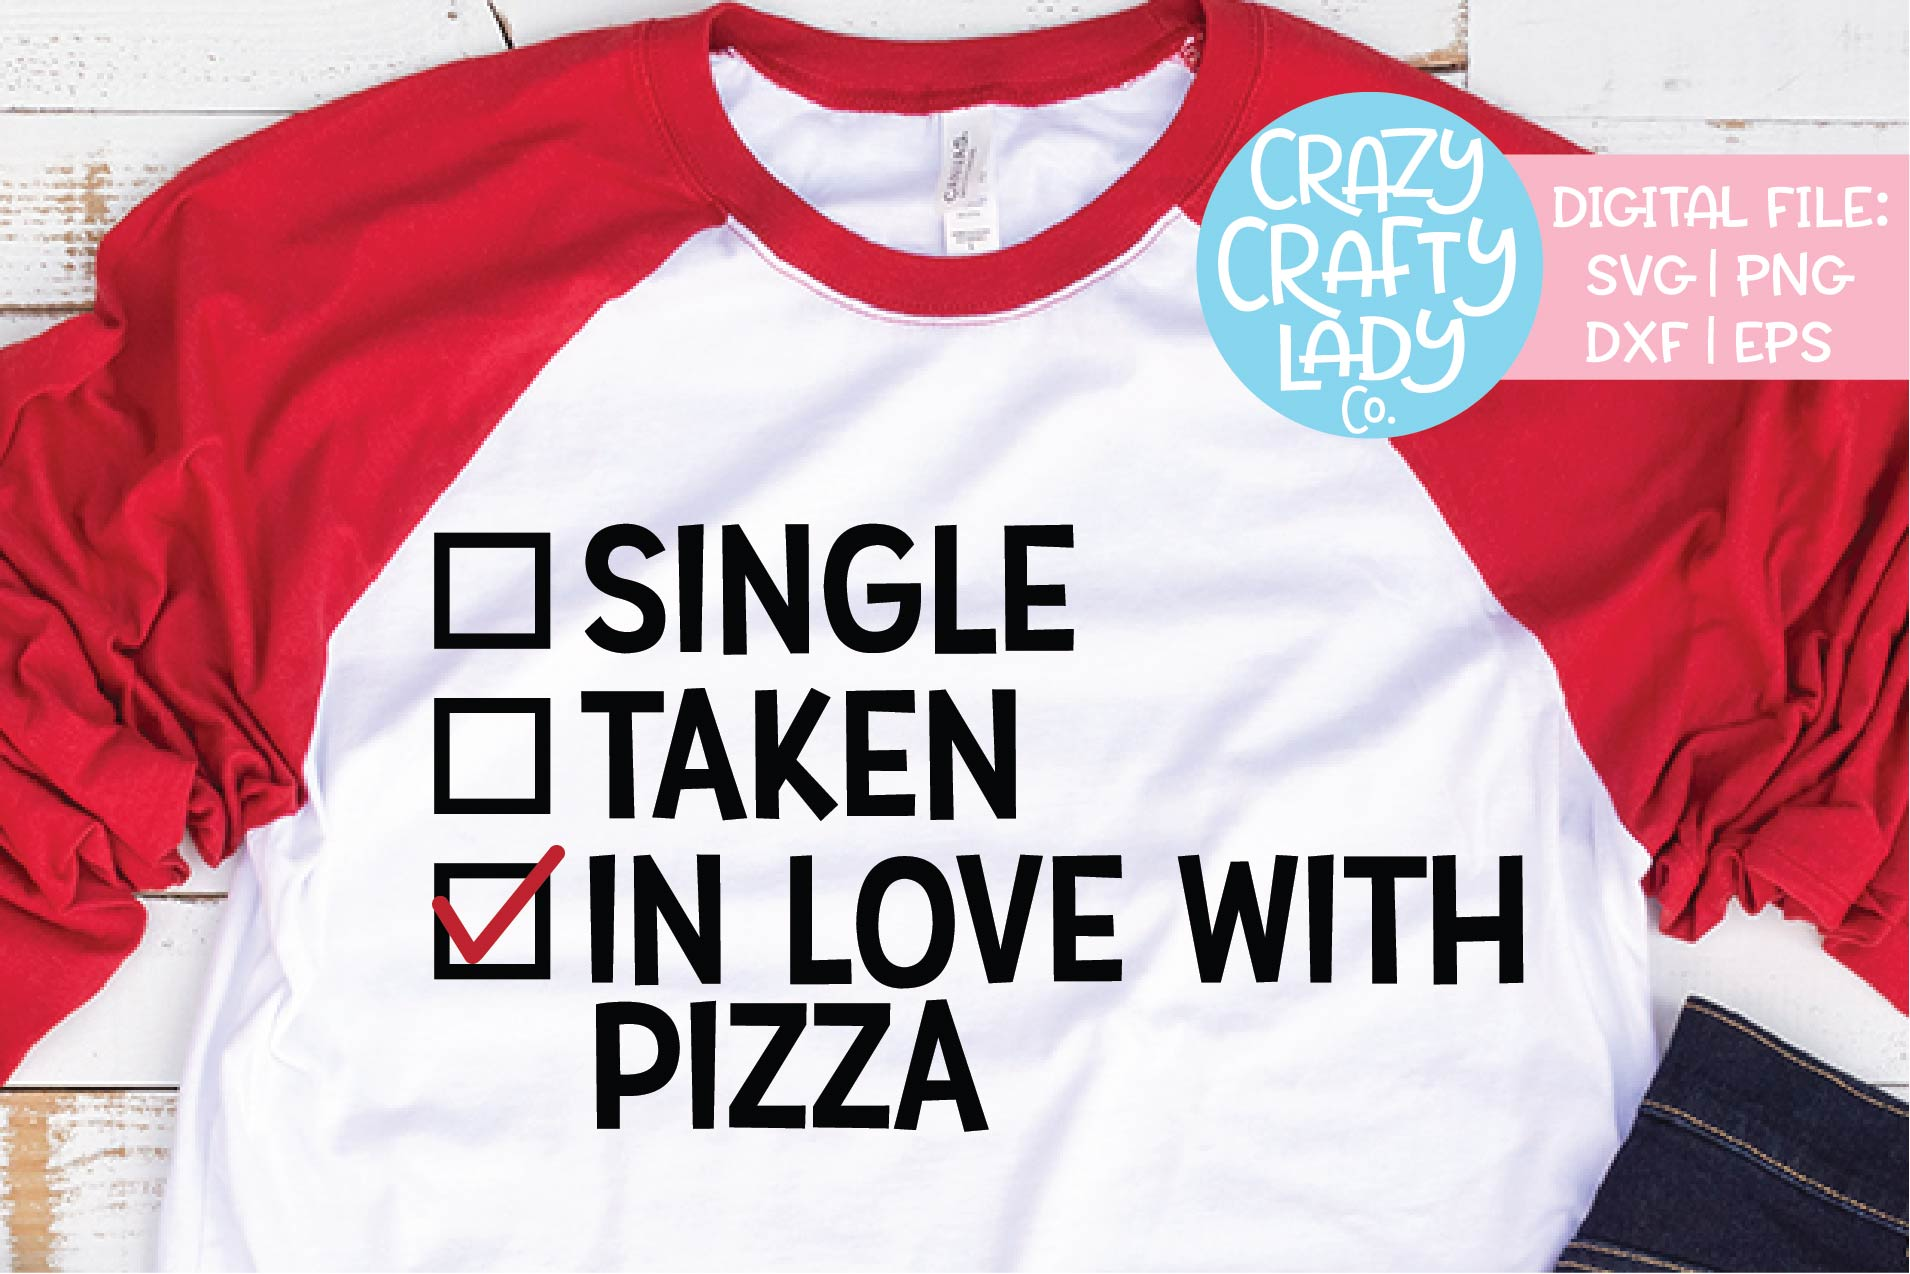 Single Taken In Love with Pizza SVG DXF EPS PNG Cut File example image 1